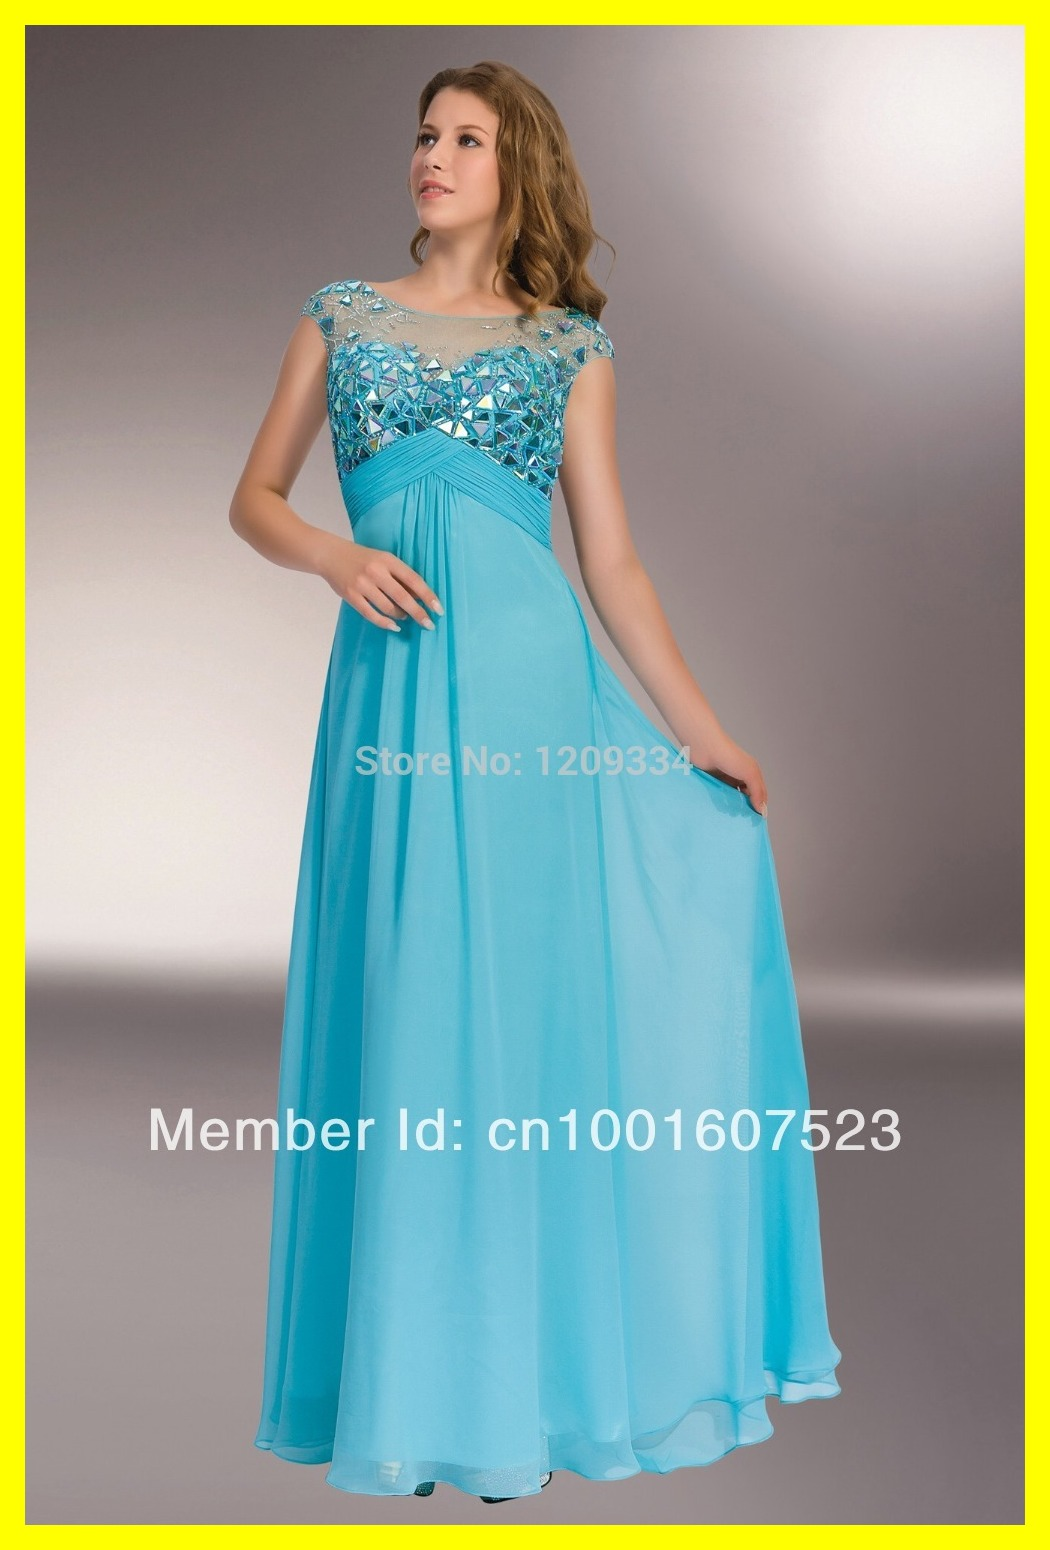 Online Prom Dress Stores